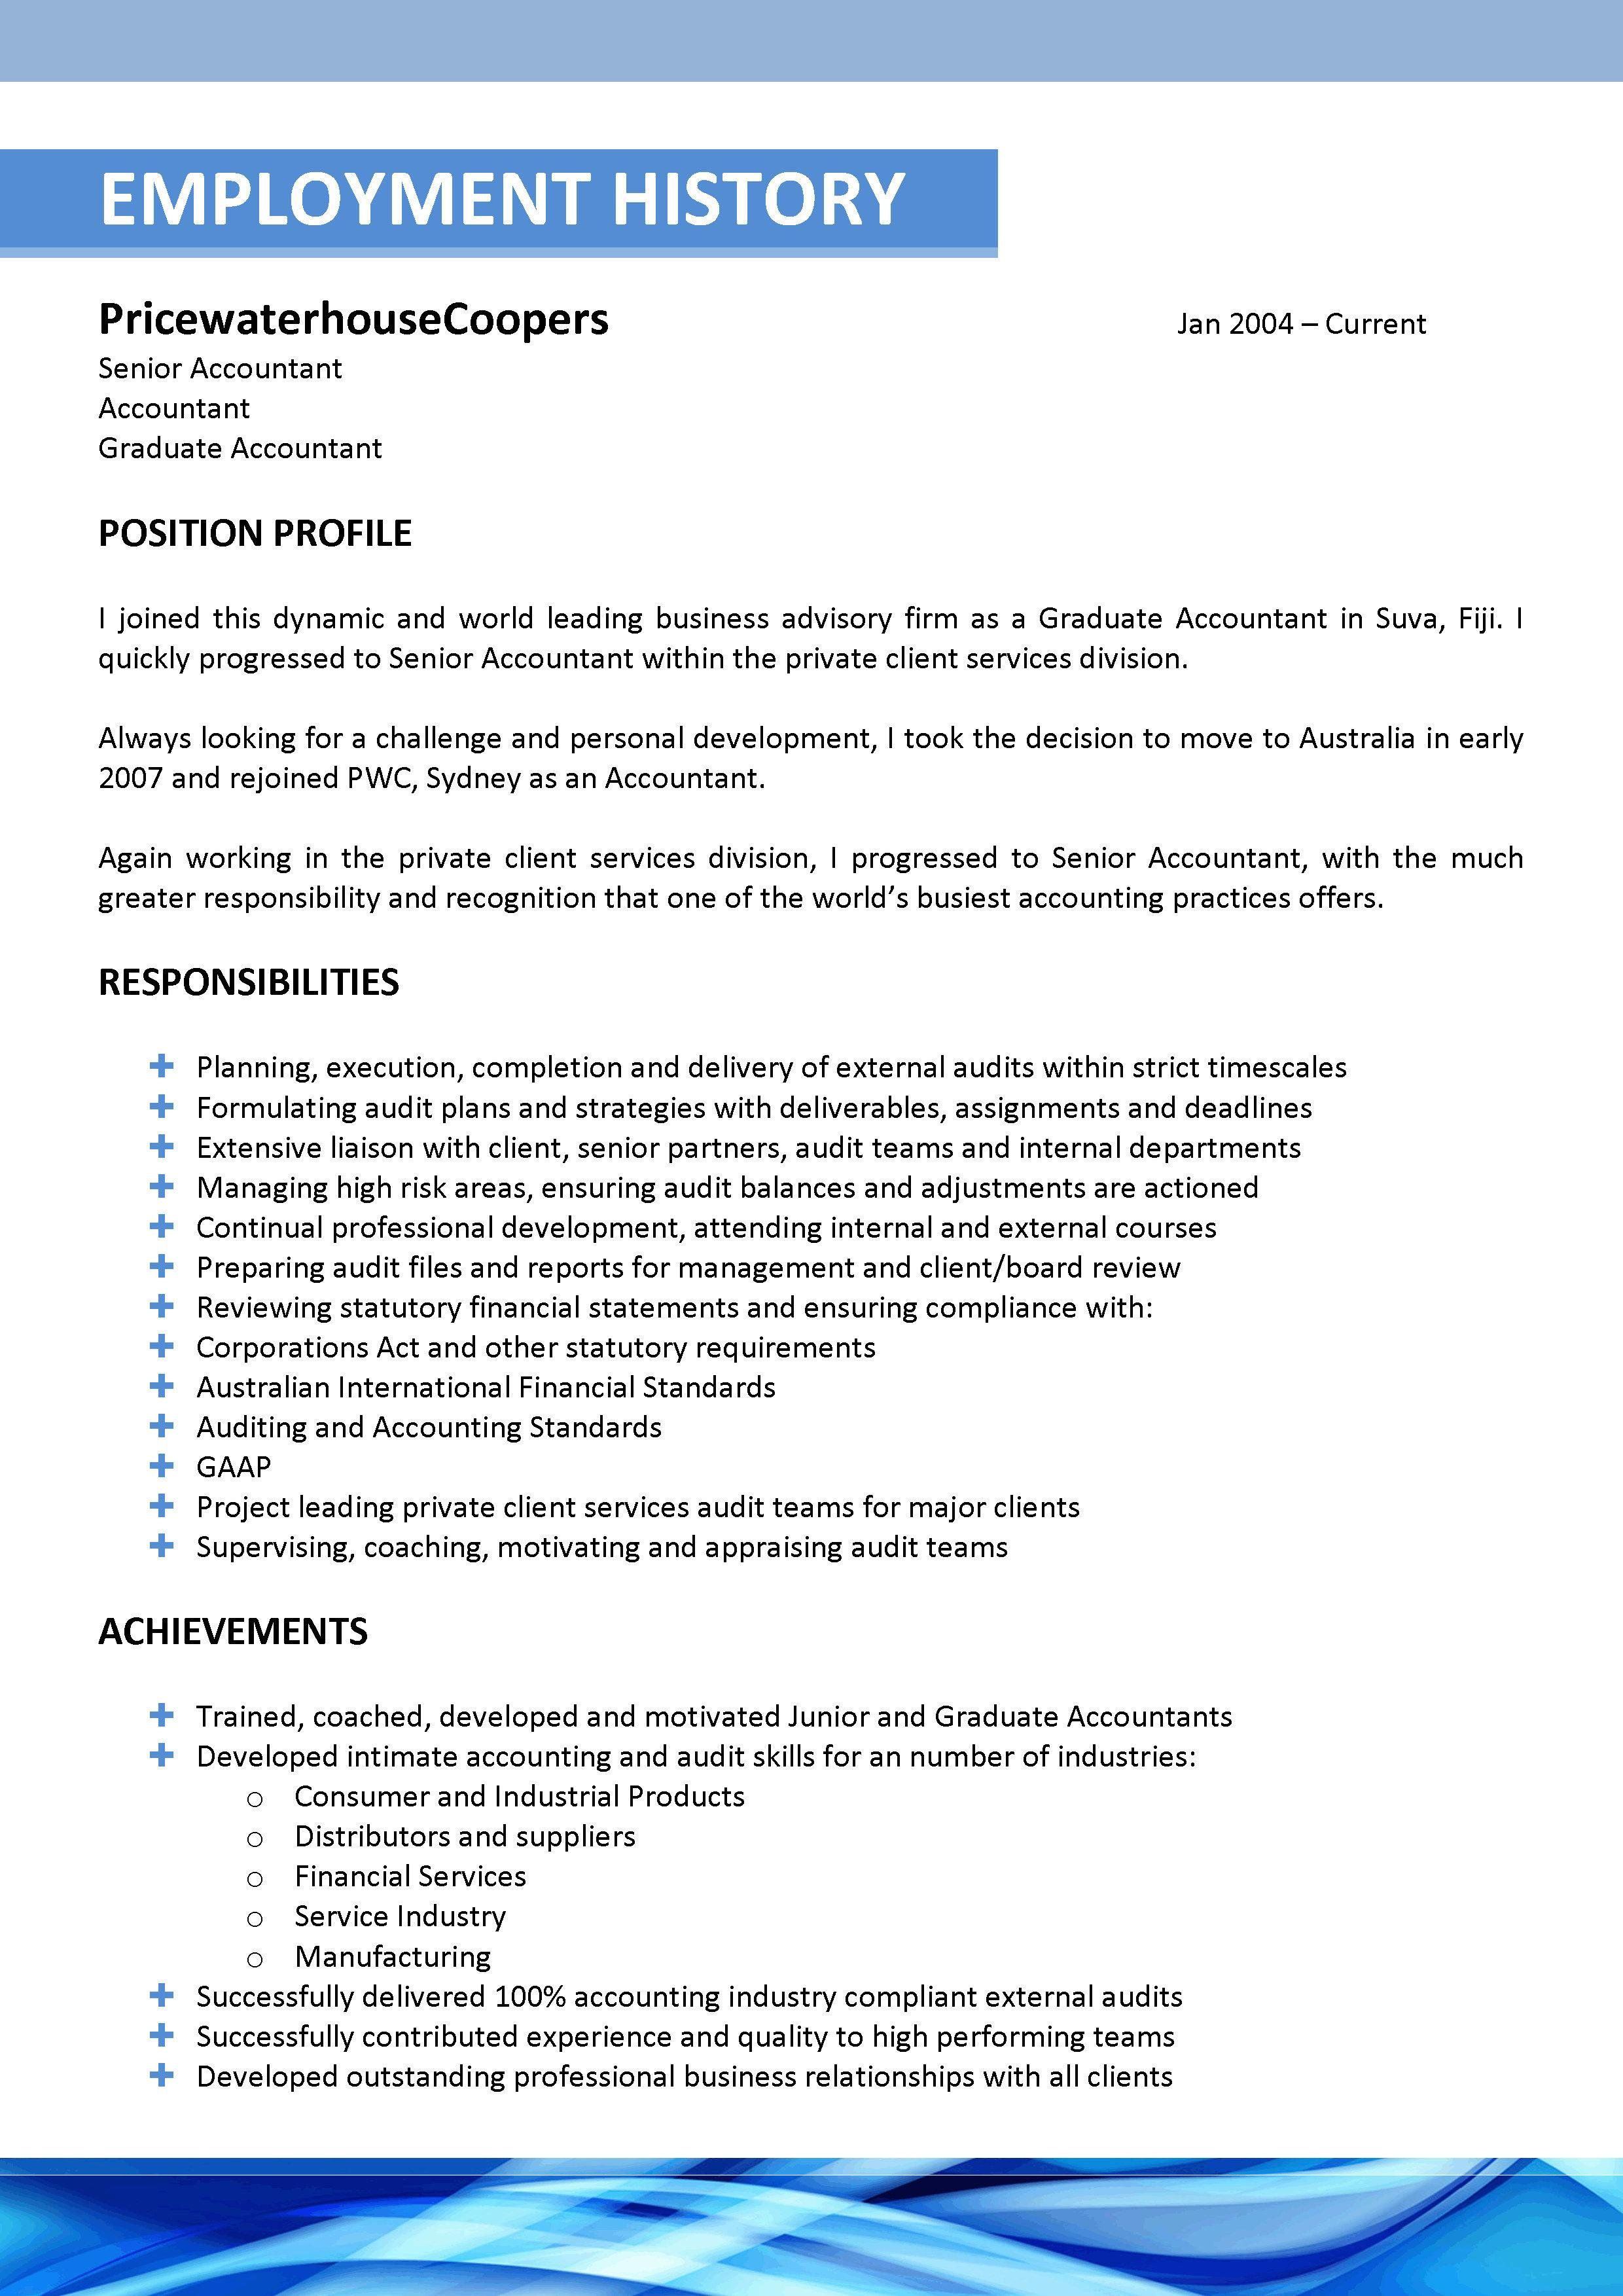 We Can Help With Professional Resume Writing Resume Templates Image Result For Resume Template Free Resume Templates Download For Word Resume Genius Fr Bergen